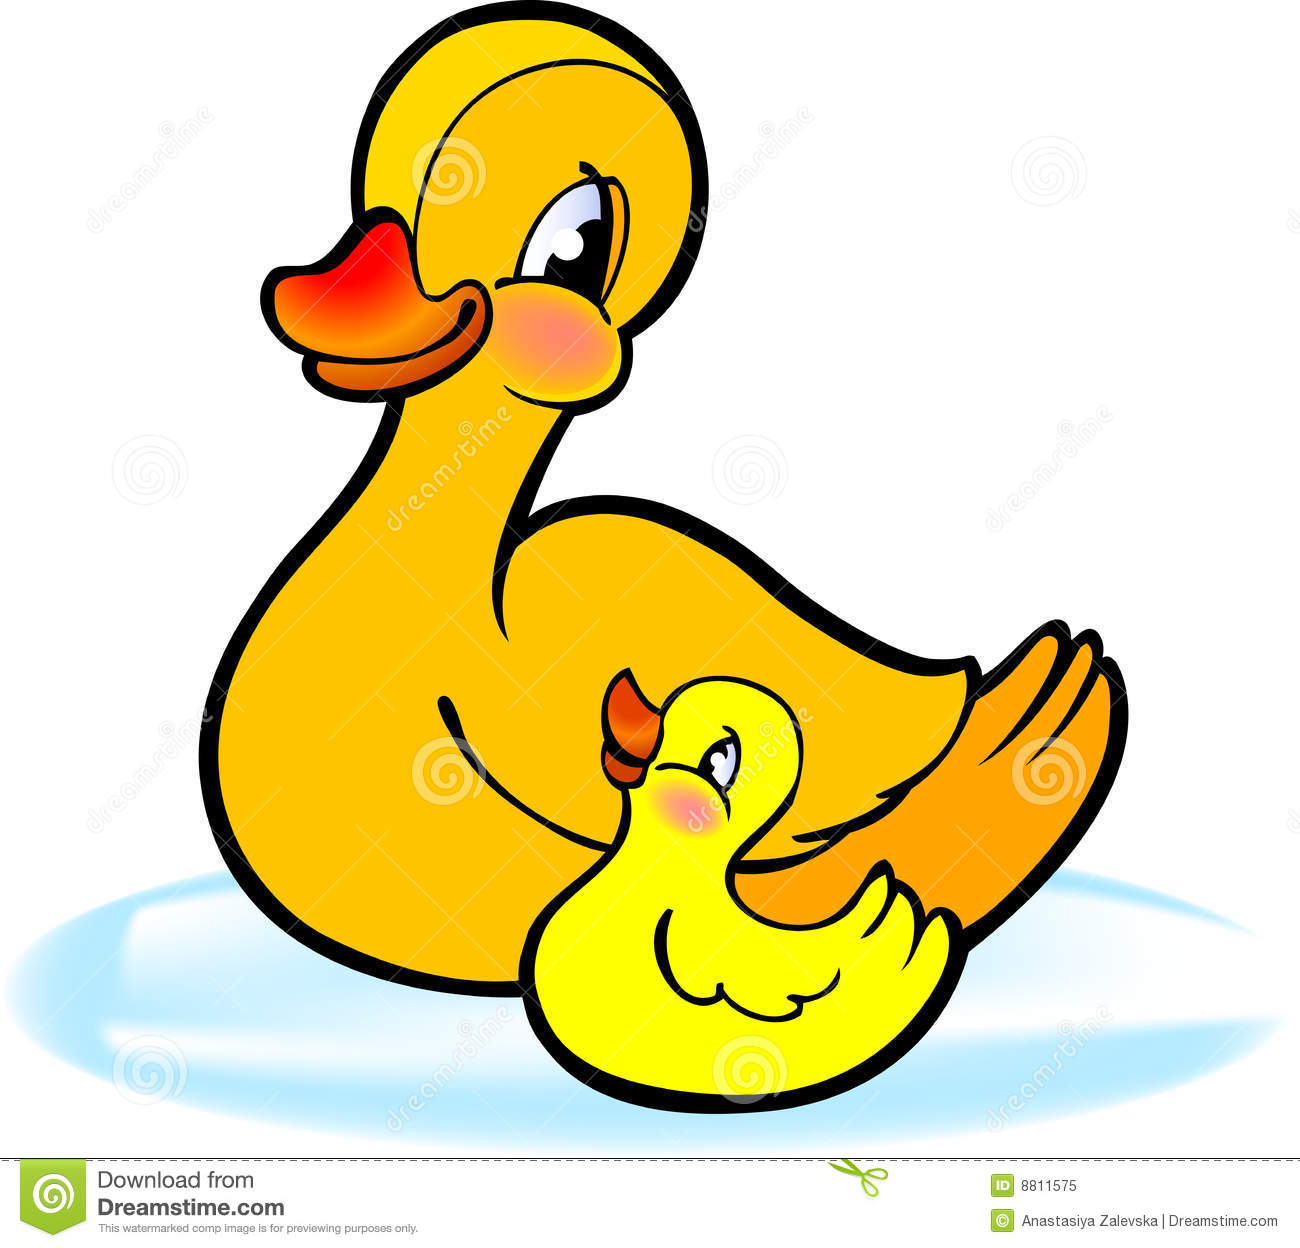 Duckling clipart #2